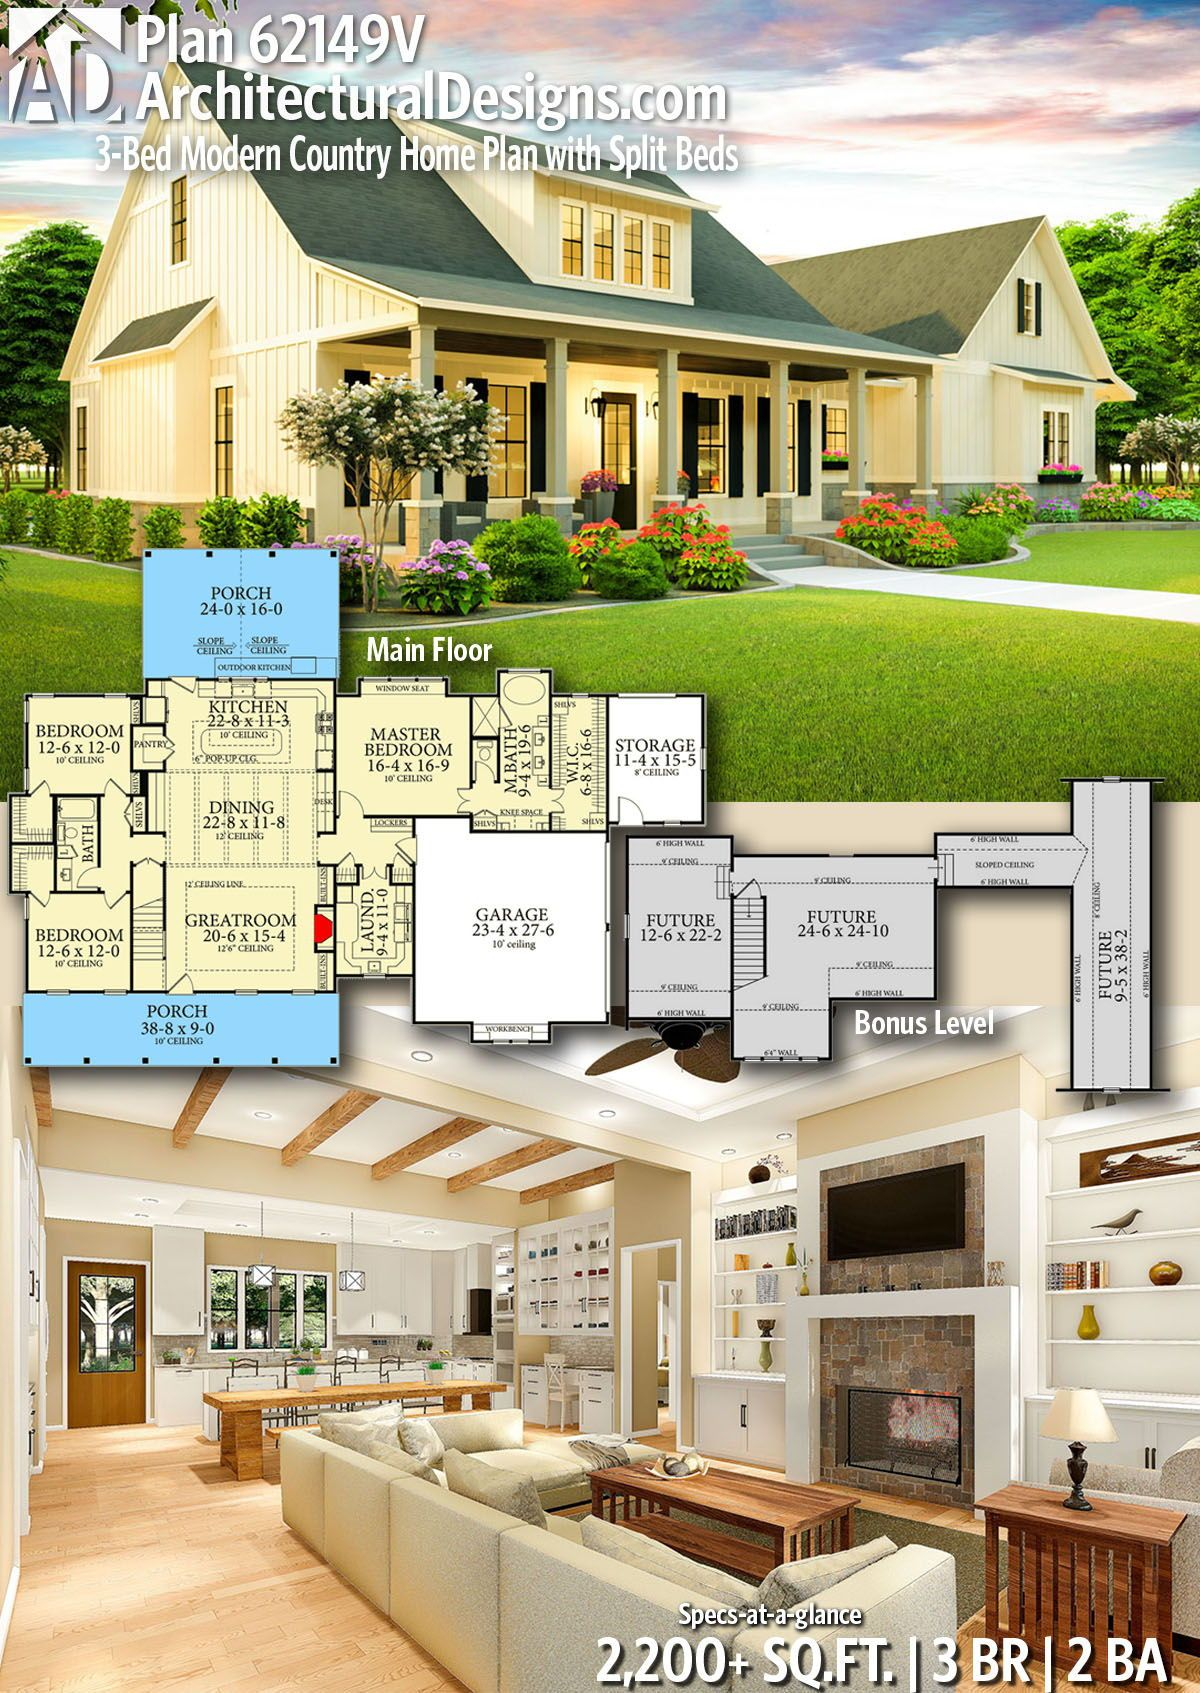 Plan 62149v 3 Bed Modern Country Home Plan With Split Beds